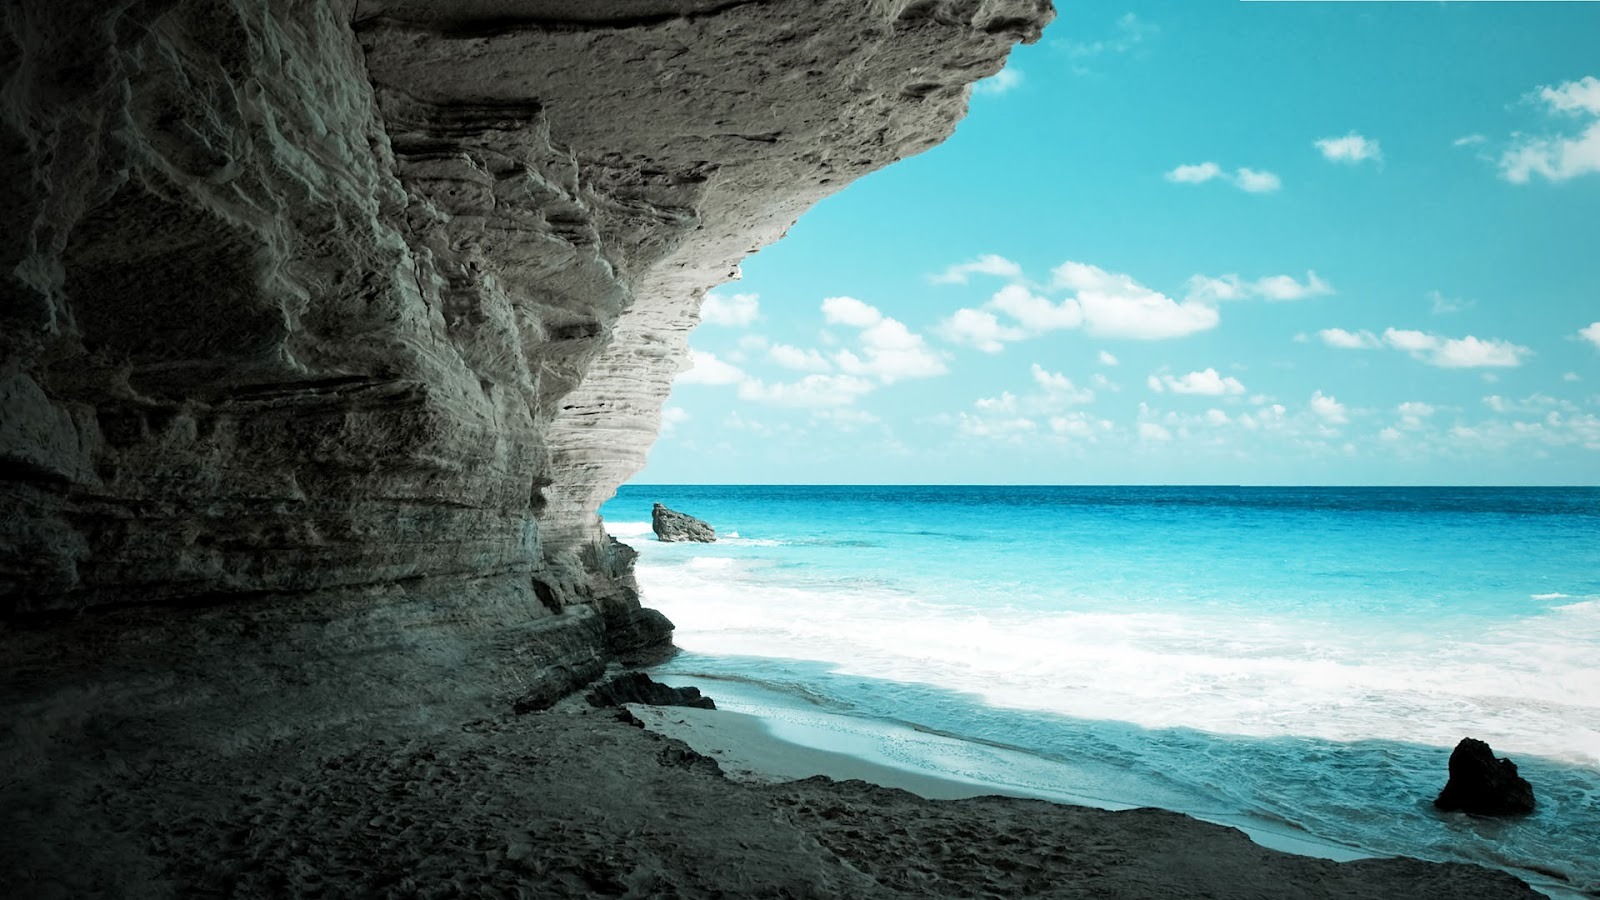 amazing full hd wallpaper cave on the beach wallpaperjpg 1600x900